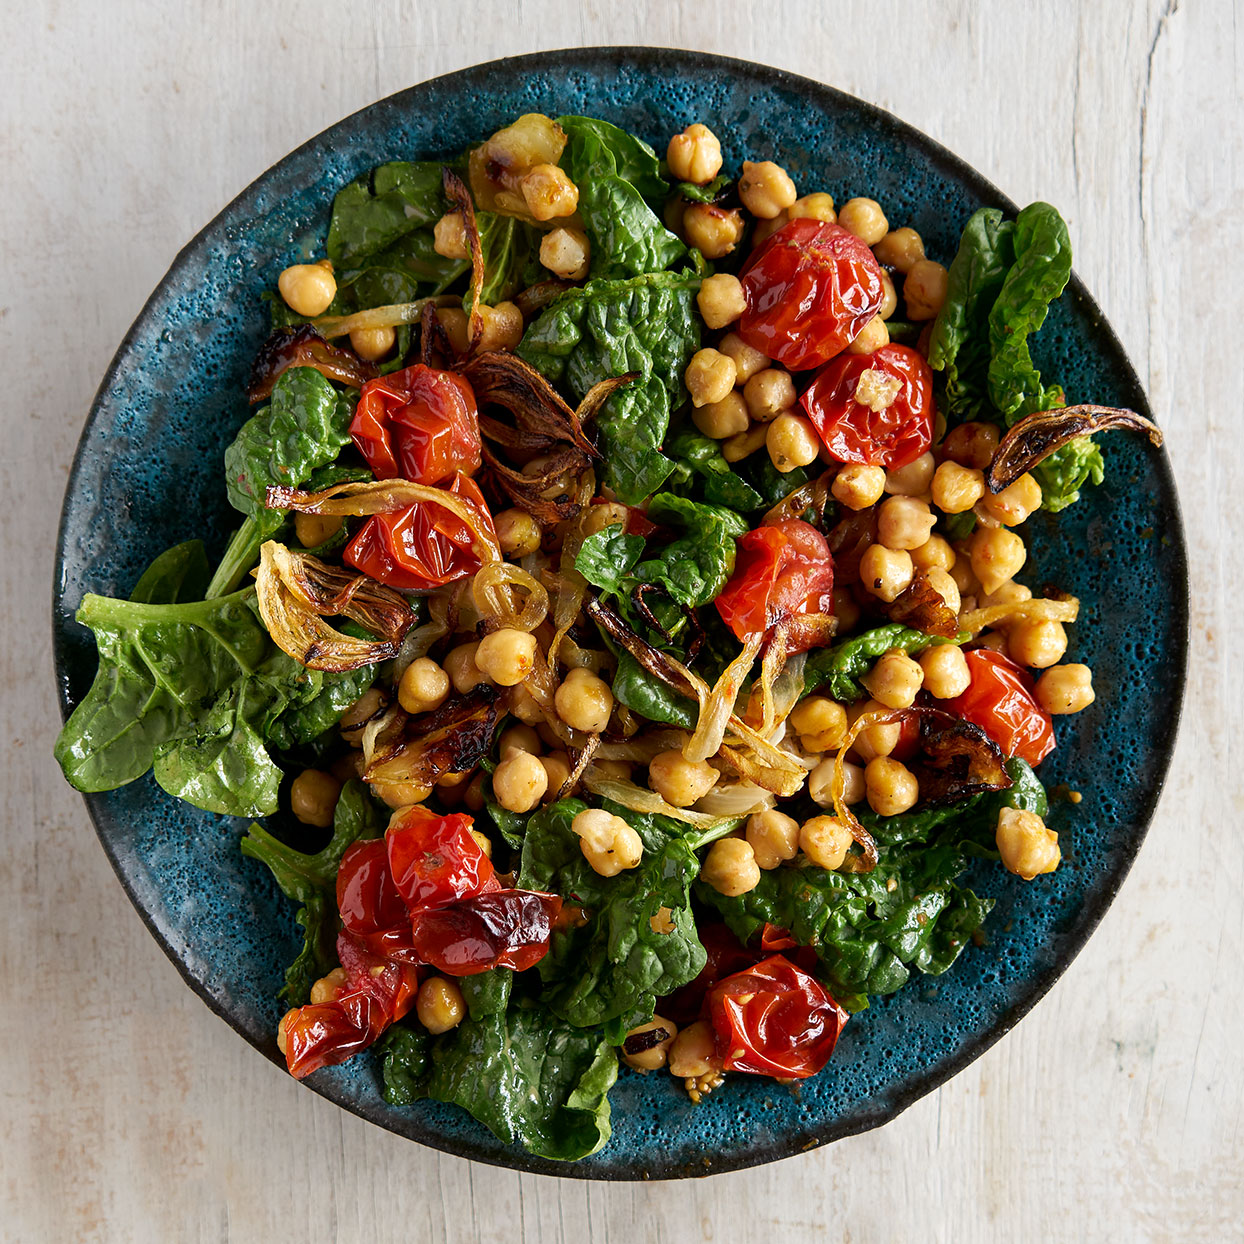 Warm Spinach Salad with Chickpeas & Roasted Tomatoes